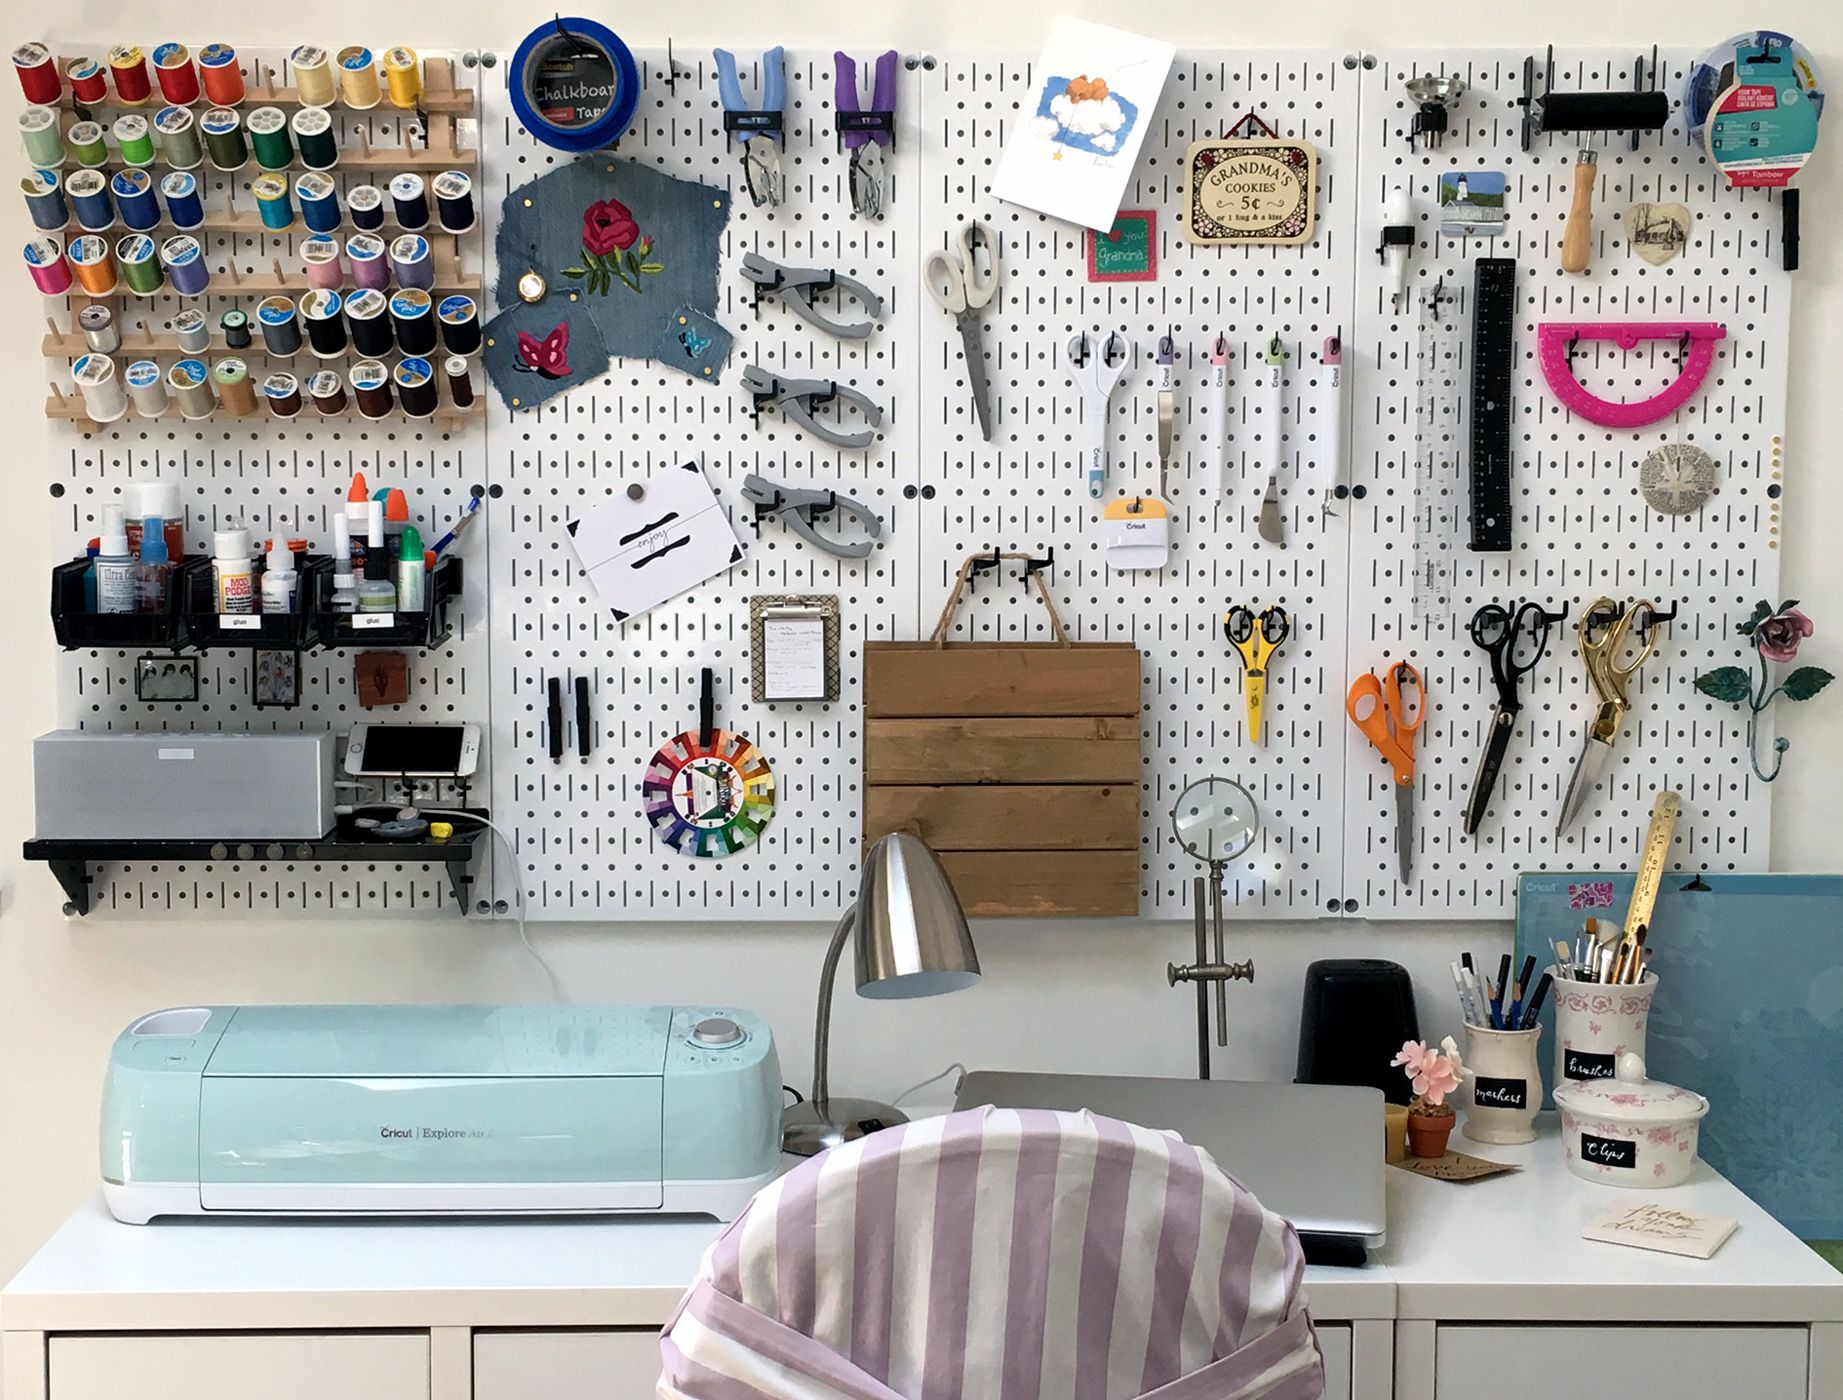 Wall Control Wall Mounted Pegboard Is Great For Hobby And Craft Supplies  Storage And Organization, Like This Wonderful Pegboard Craft And Sewing  Station.